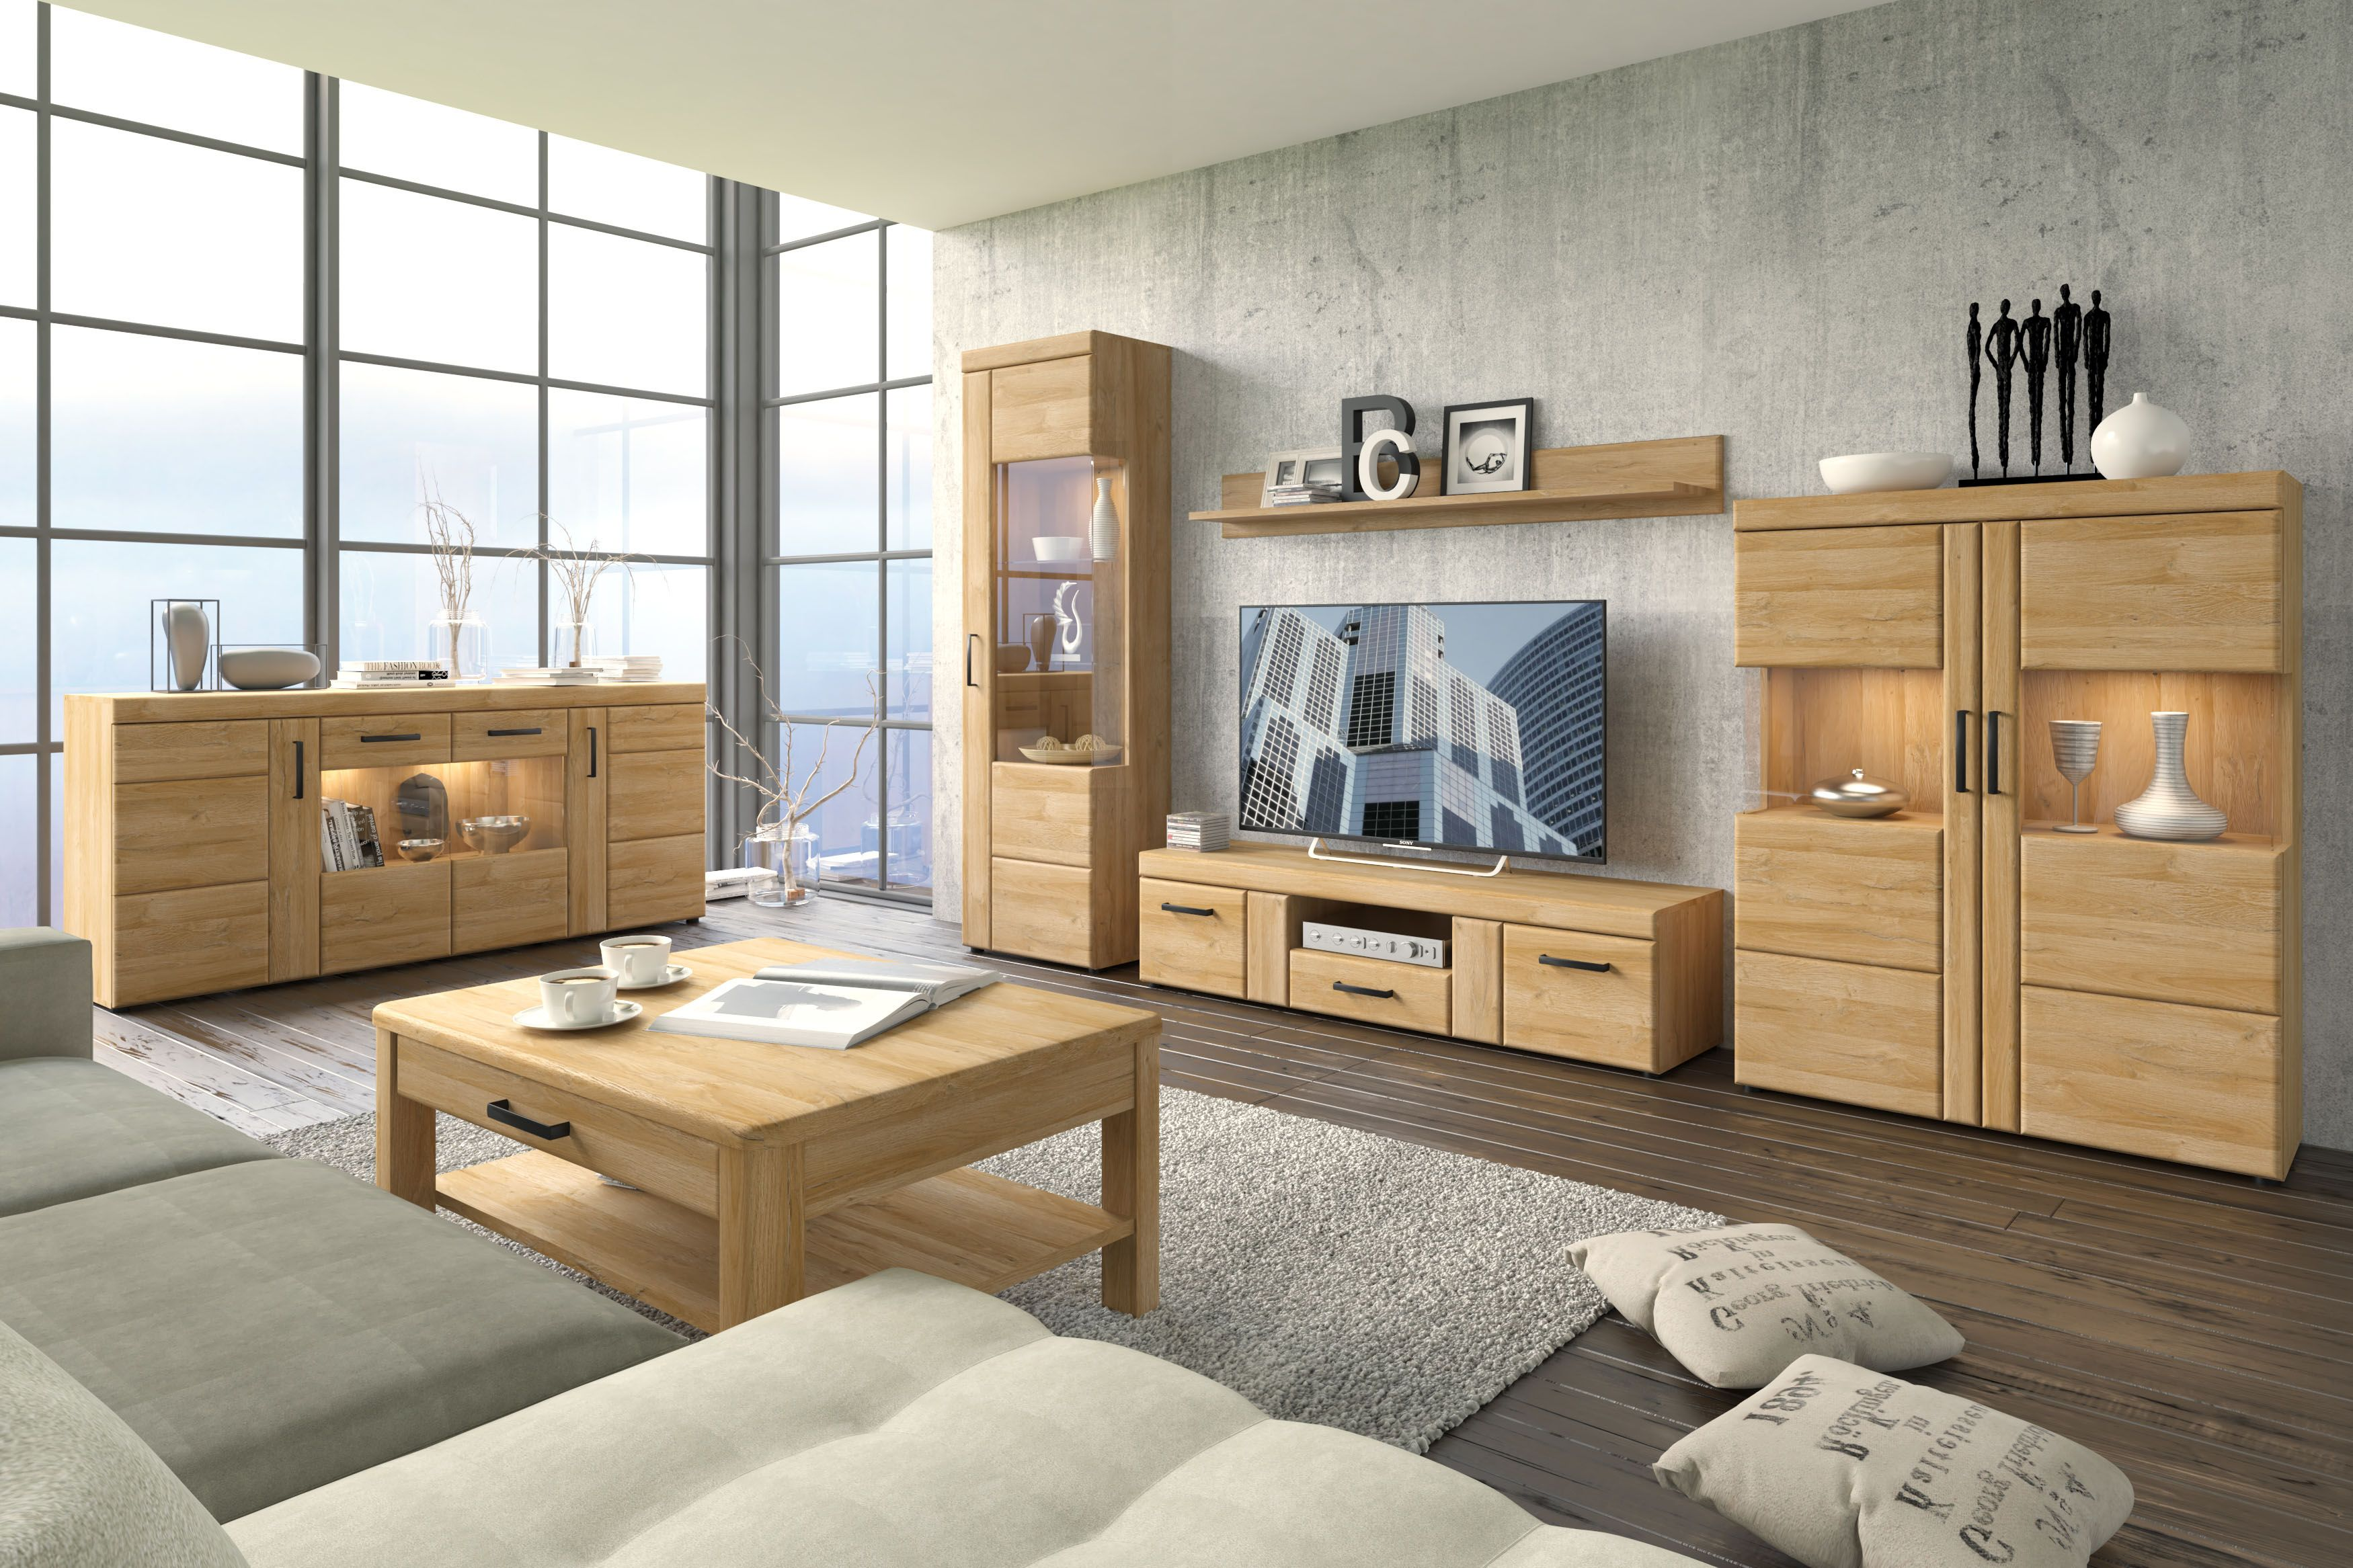 Shop over 5,000 Items For Your Living Room Layout At Luluna.co.uk